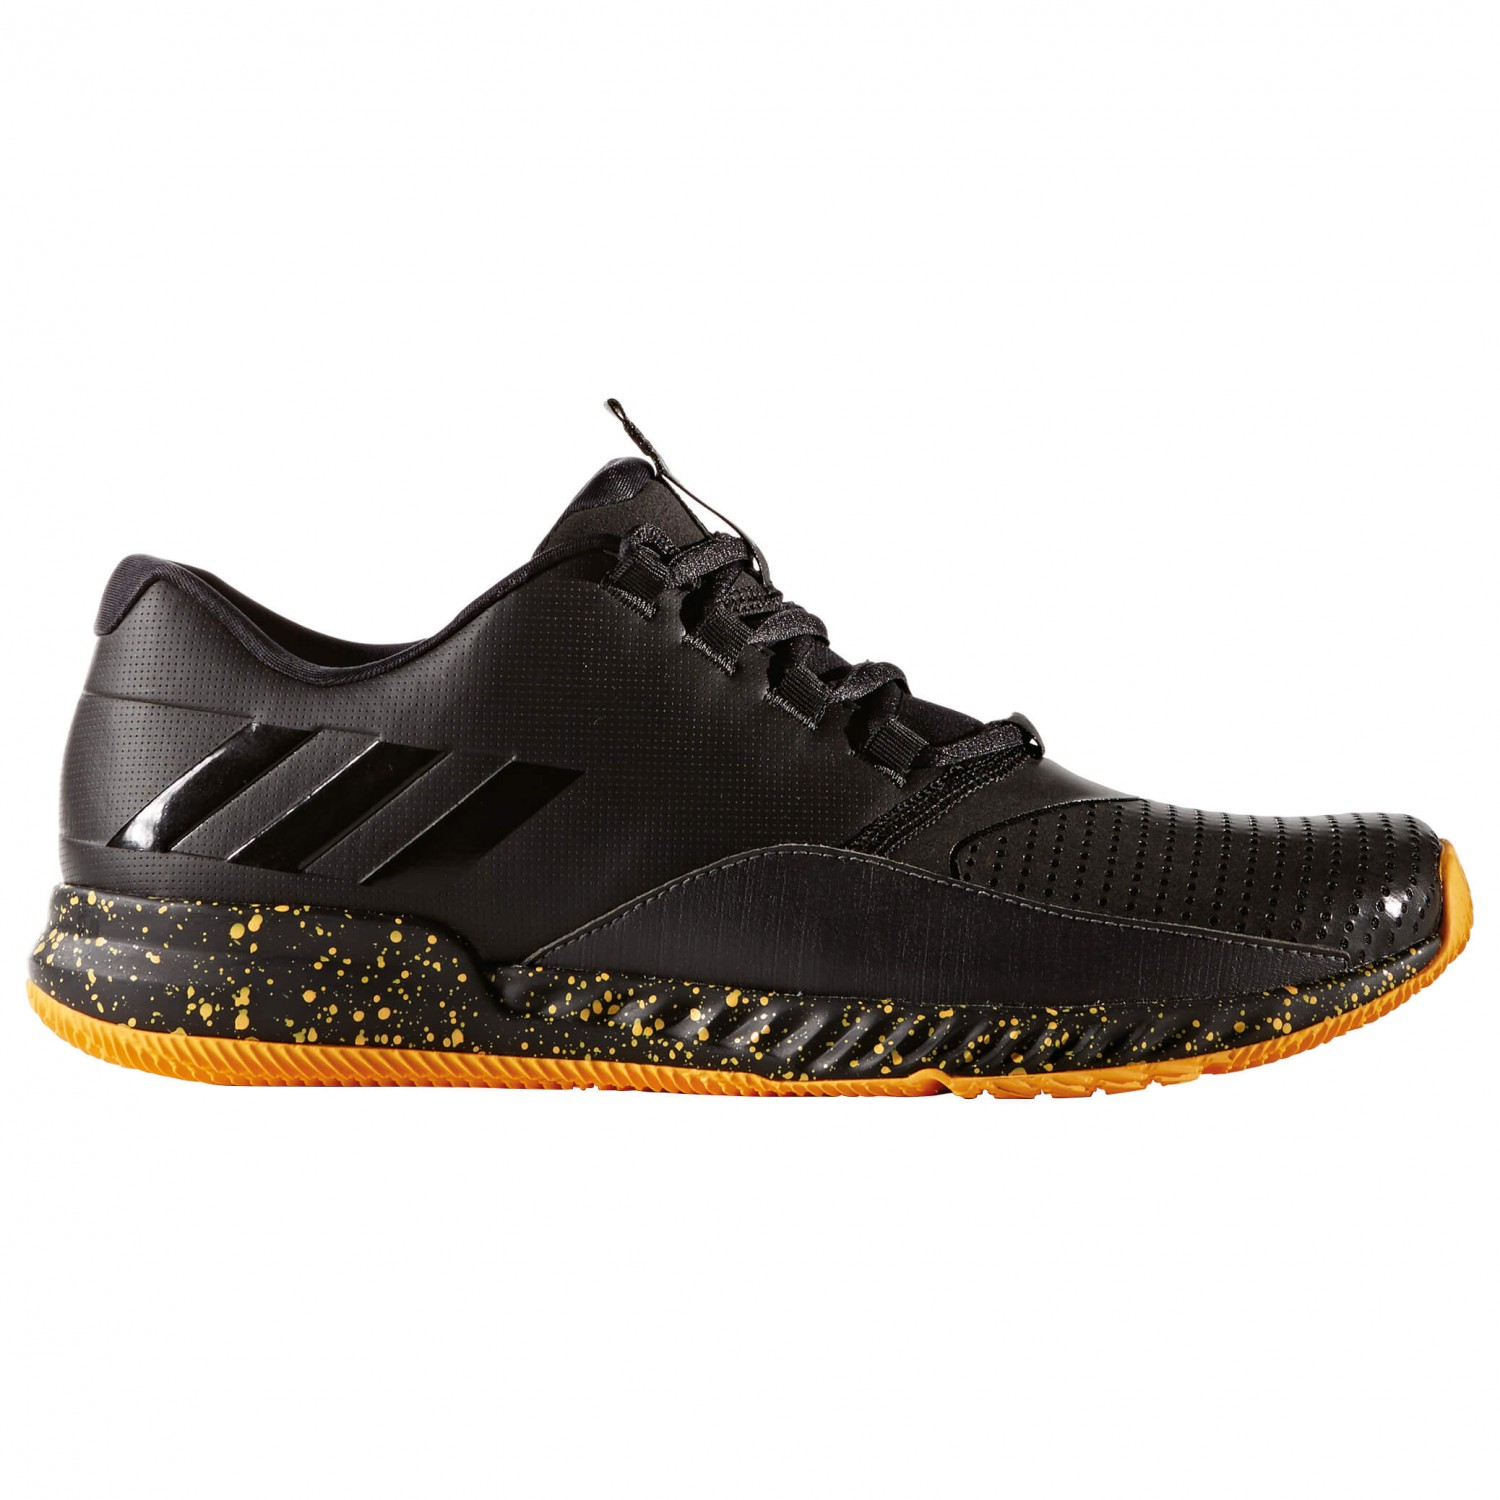 de Homme fitness Chaussures Adidas Crazytrain Bounce rBoQdCxeW